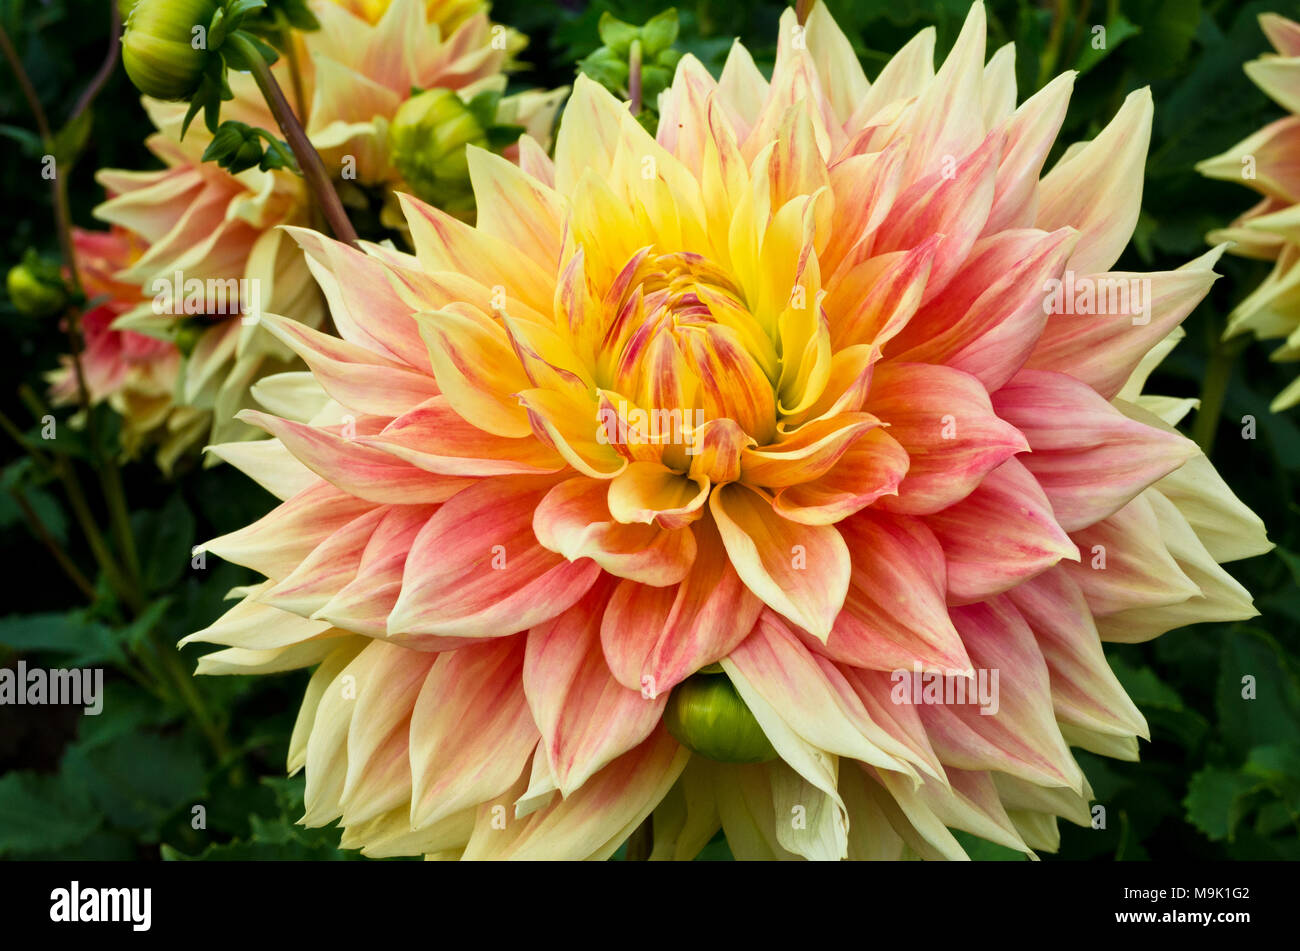 Beautiful large dahlia with yellow and pink tones.  It is a dinnerplate sized variety called 'Advance' dahlia. - Stock Image